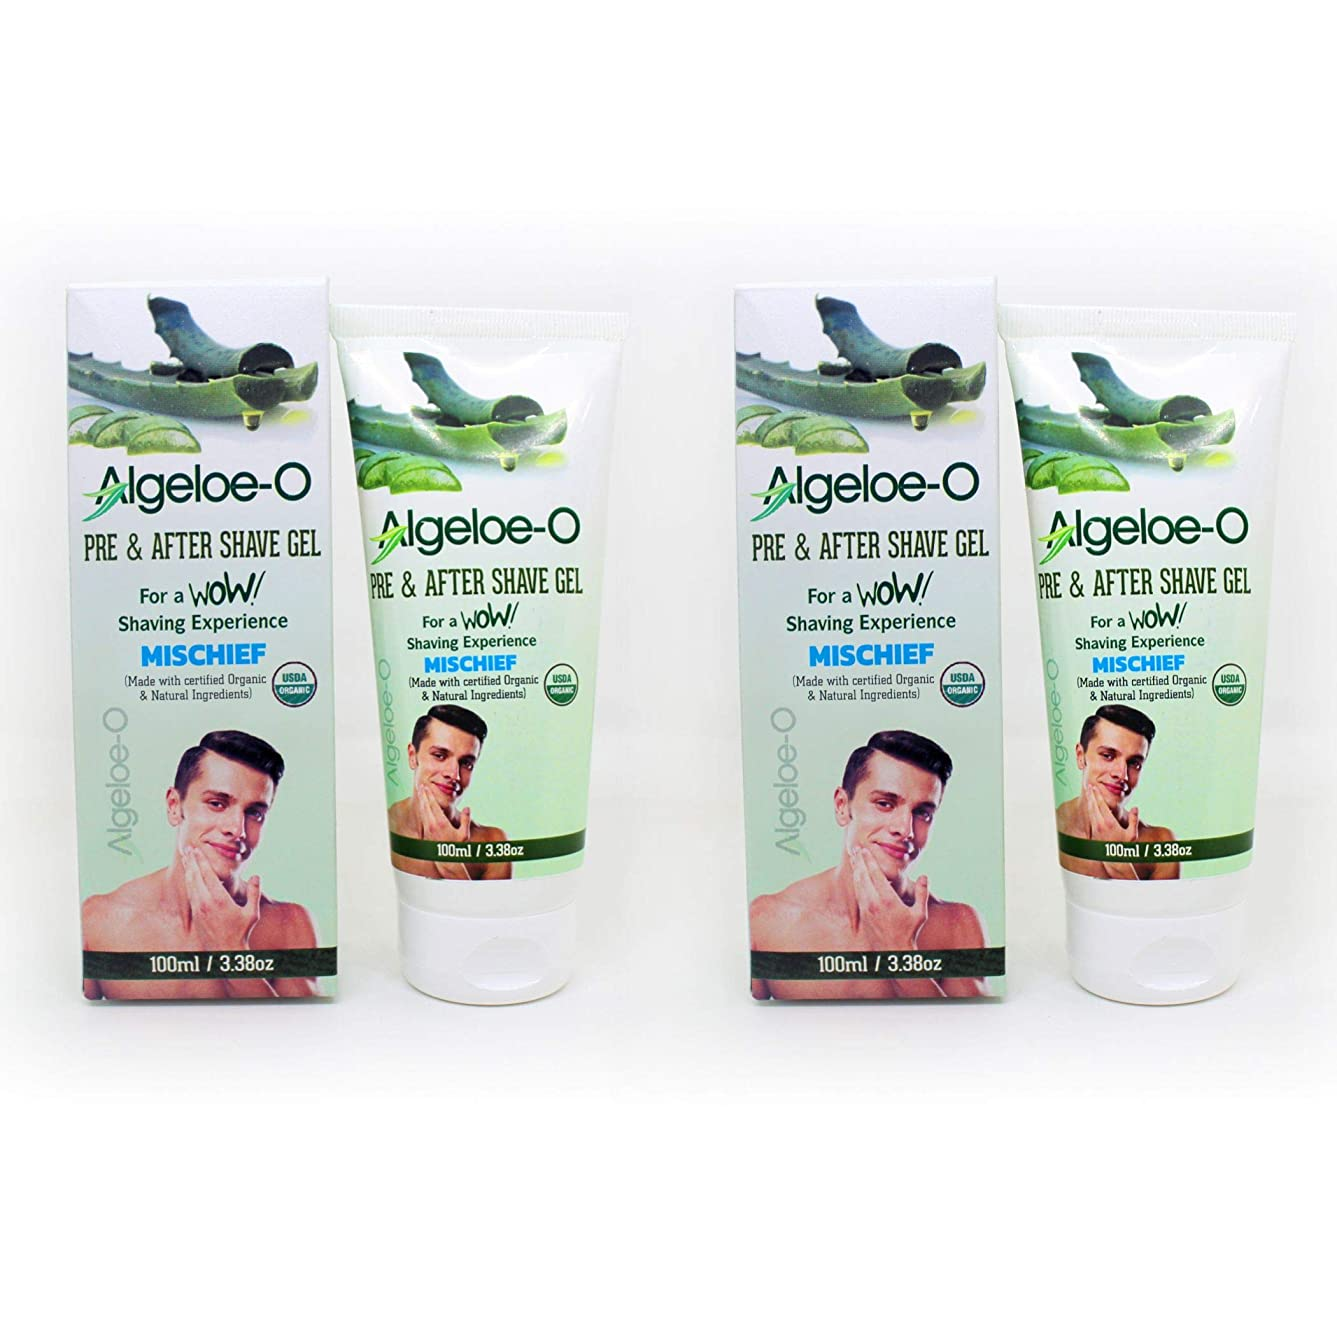 個人リアル昼間Aloevera Pre And After Shave Gel - Algeloe O Made With Certified USDA Organic And Natural Ingredients - Mischief 100 ml (3.38 Oz.) Pack Of 2